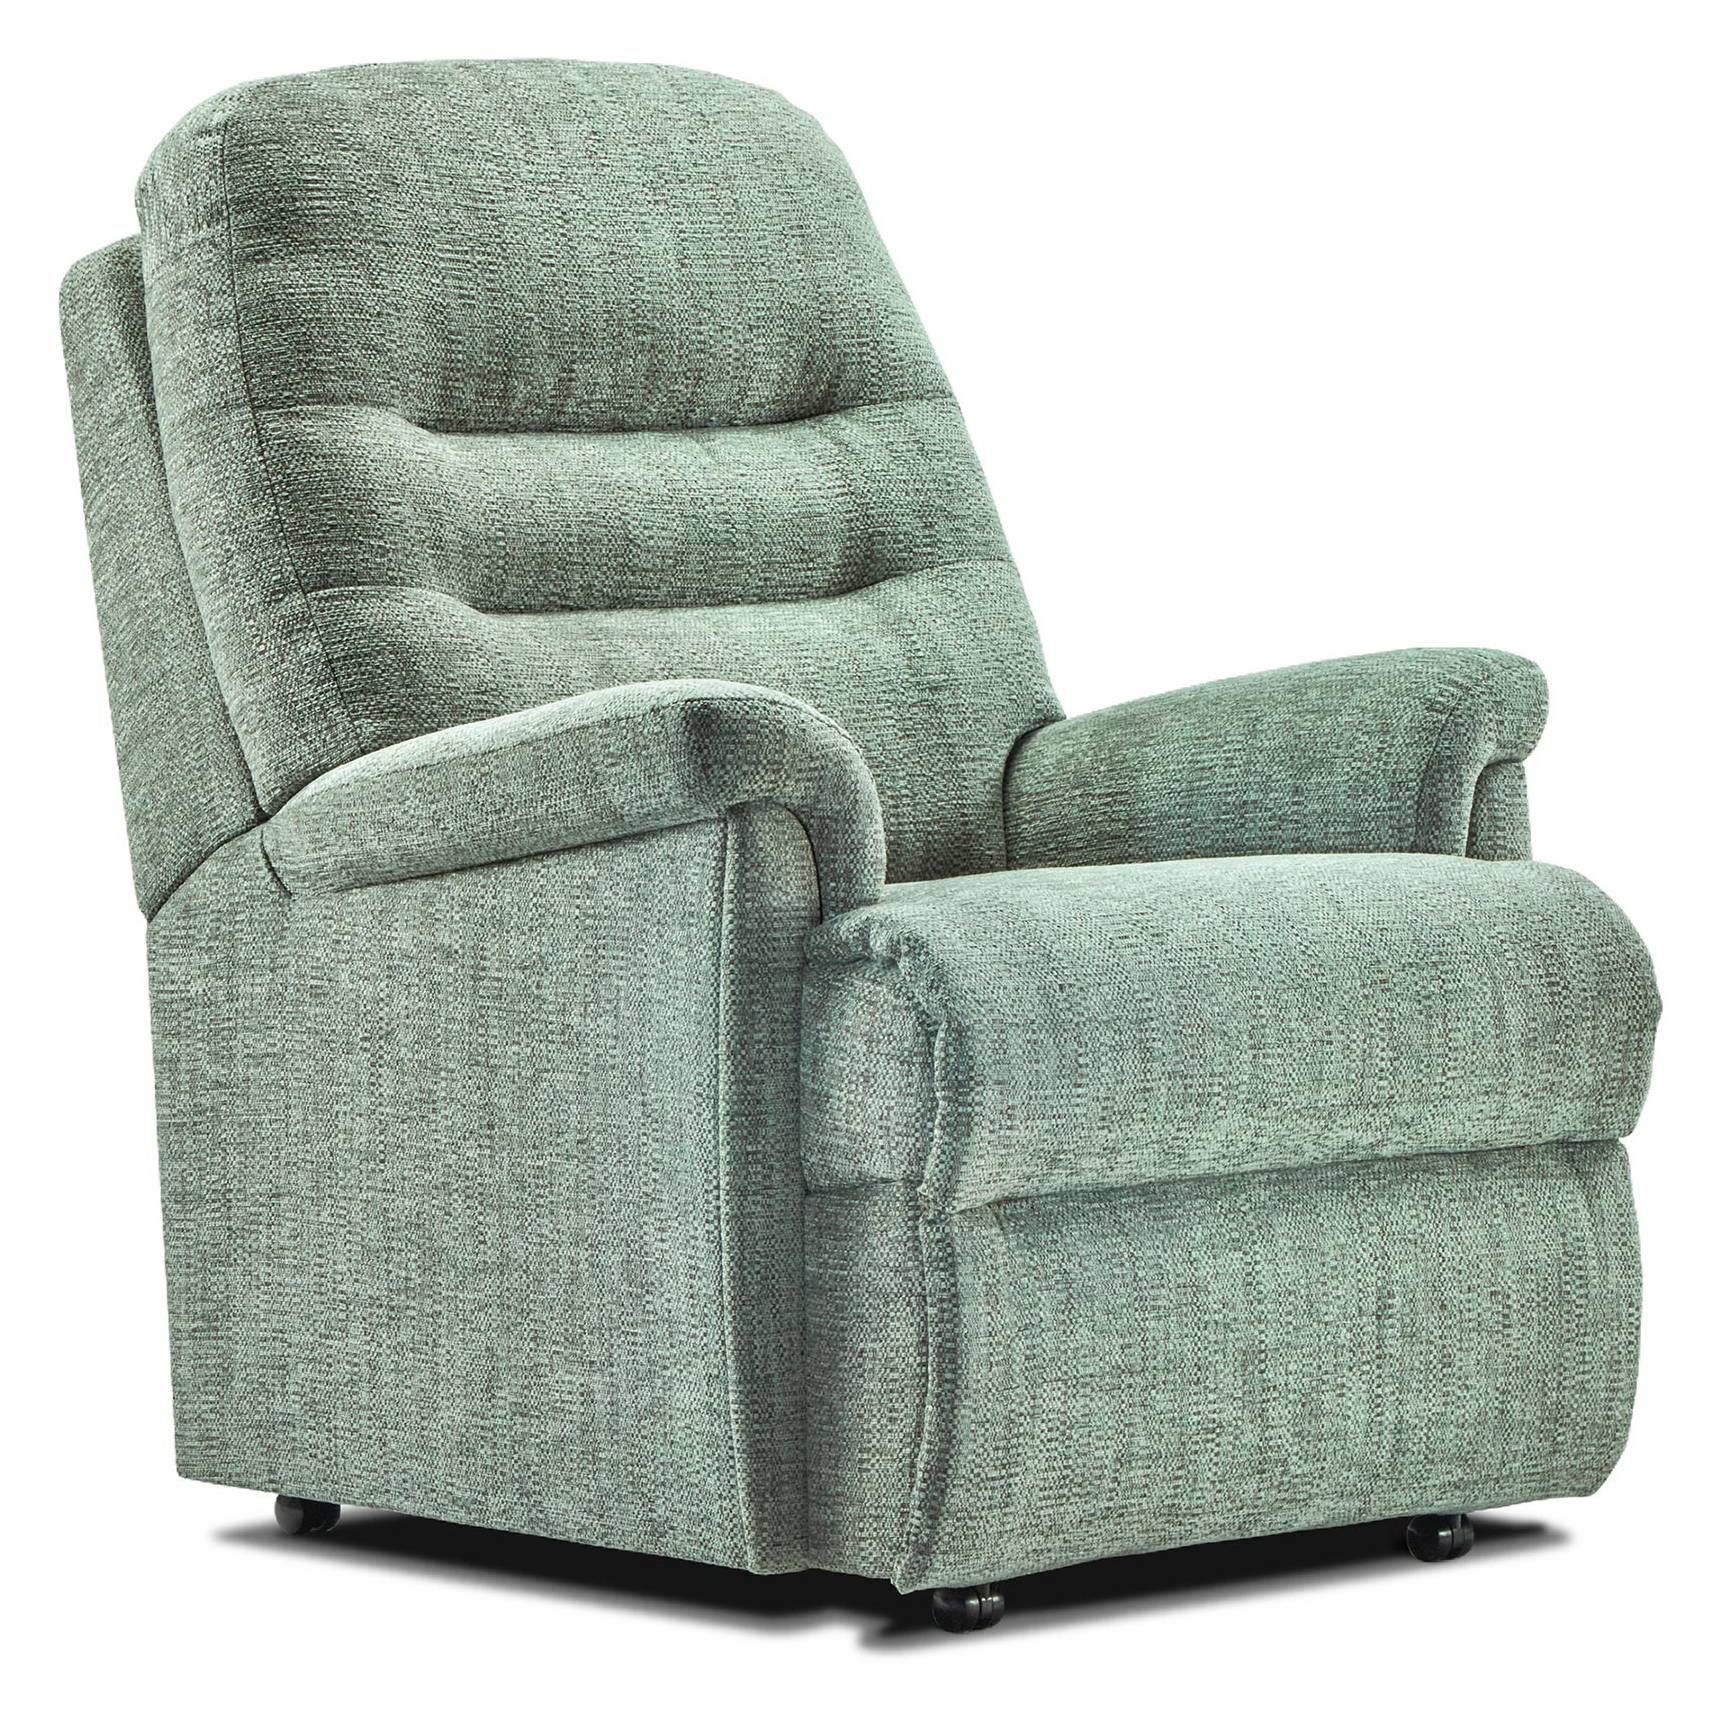 Sherborne Upholstery Keswick Collection Standard Chair